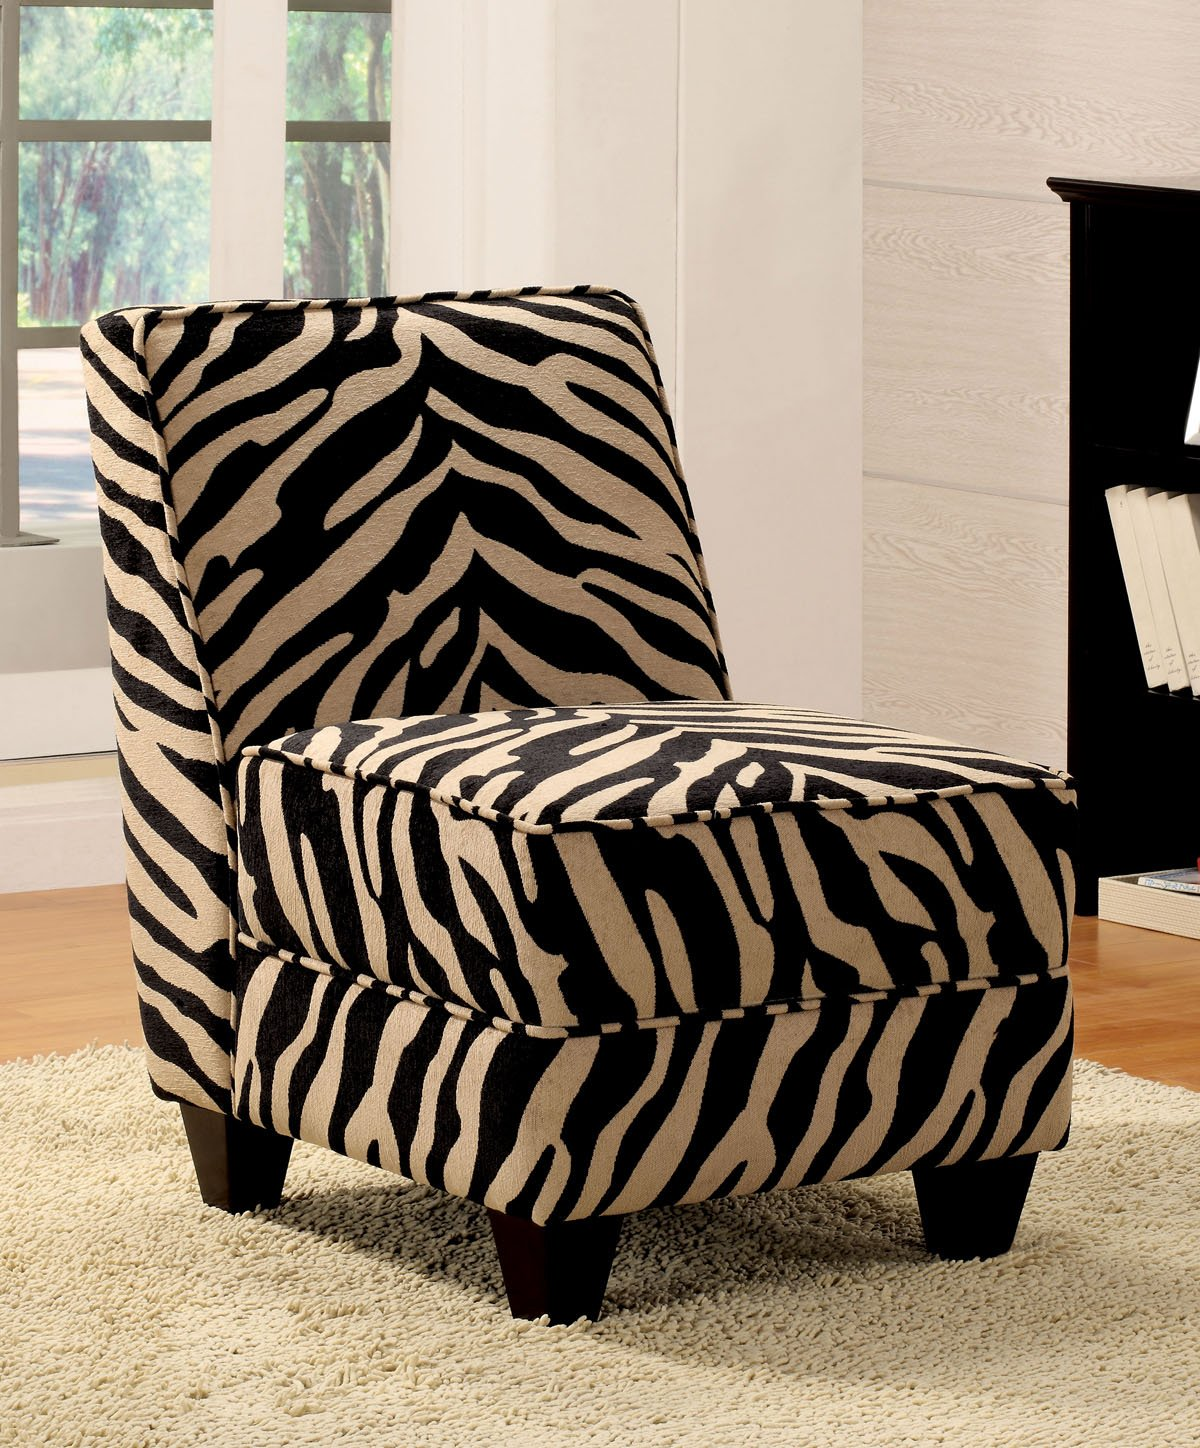 Zebra Stripe Print Accent Chairs